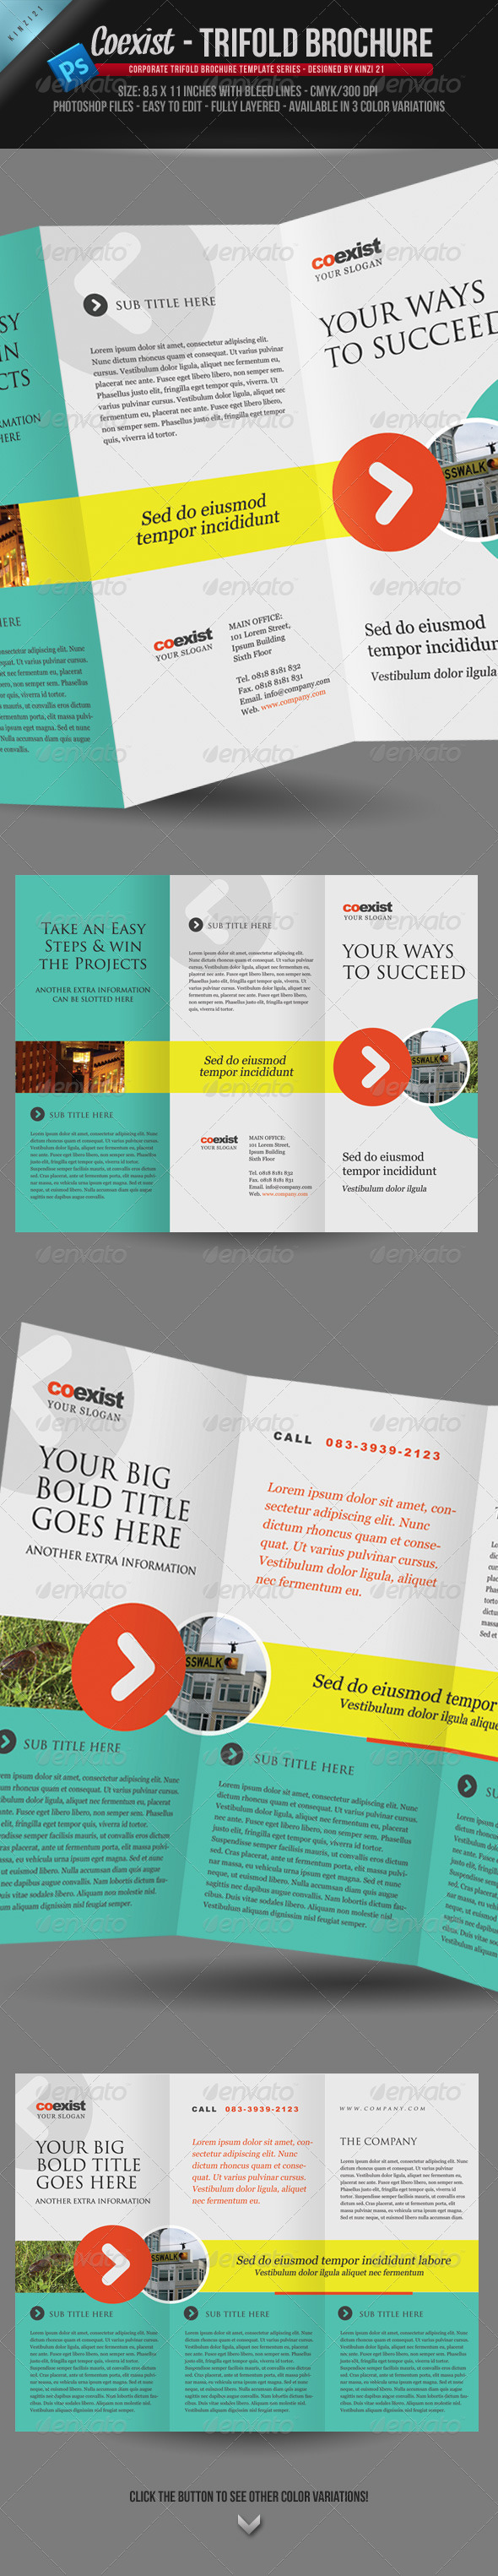 Coexist - Trifold Brochure PSD Template - Corporate Brochures